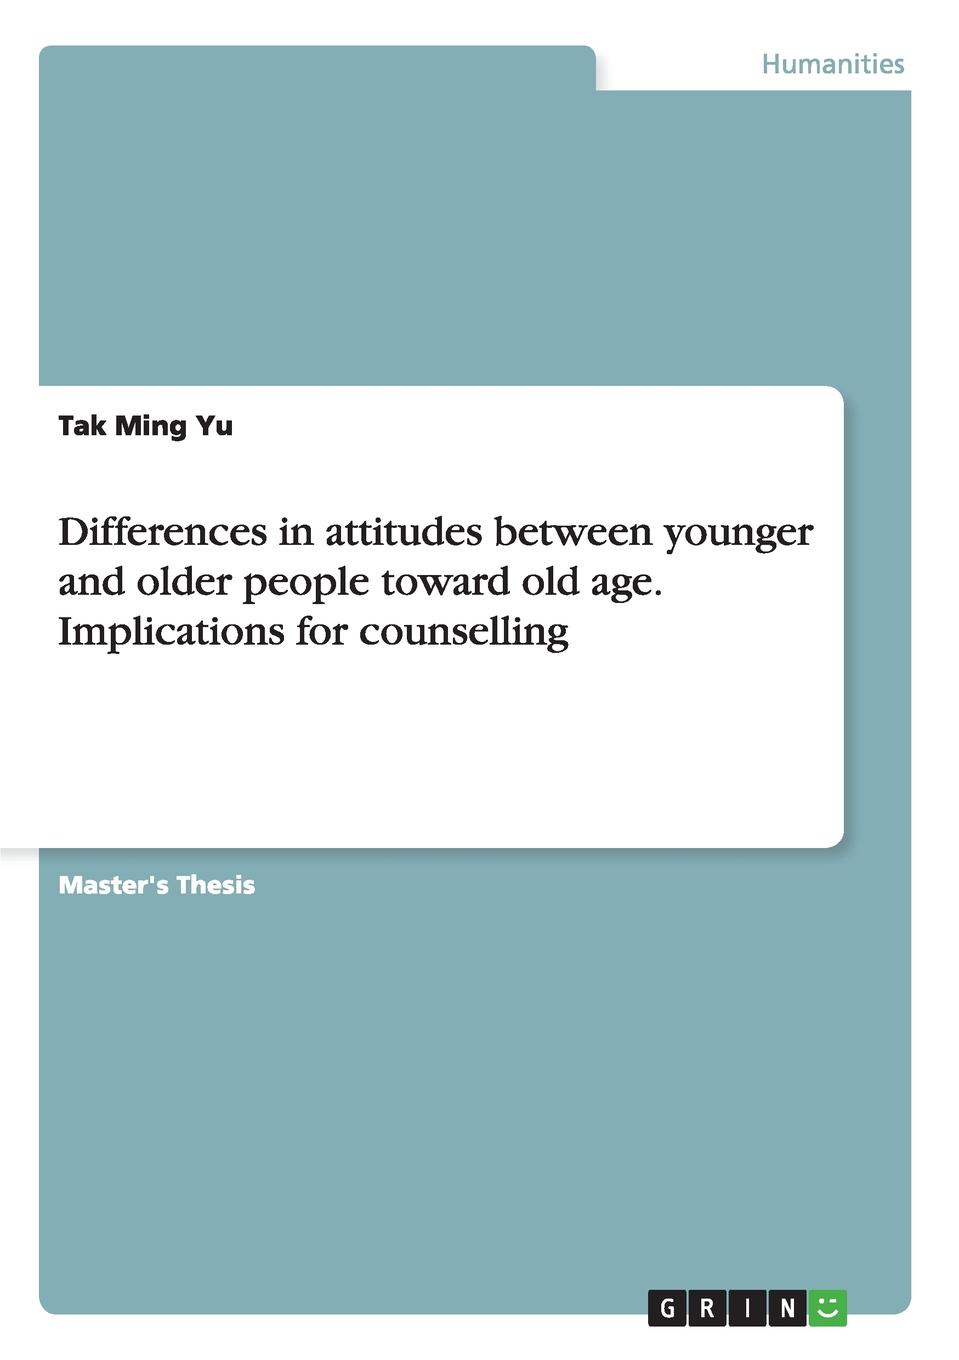 Tak Ming Yu Differences in attitudes between younger and older people toward old age. Implications for counselling